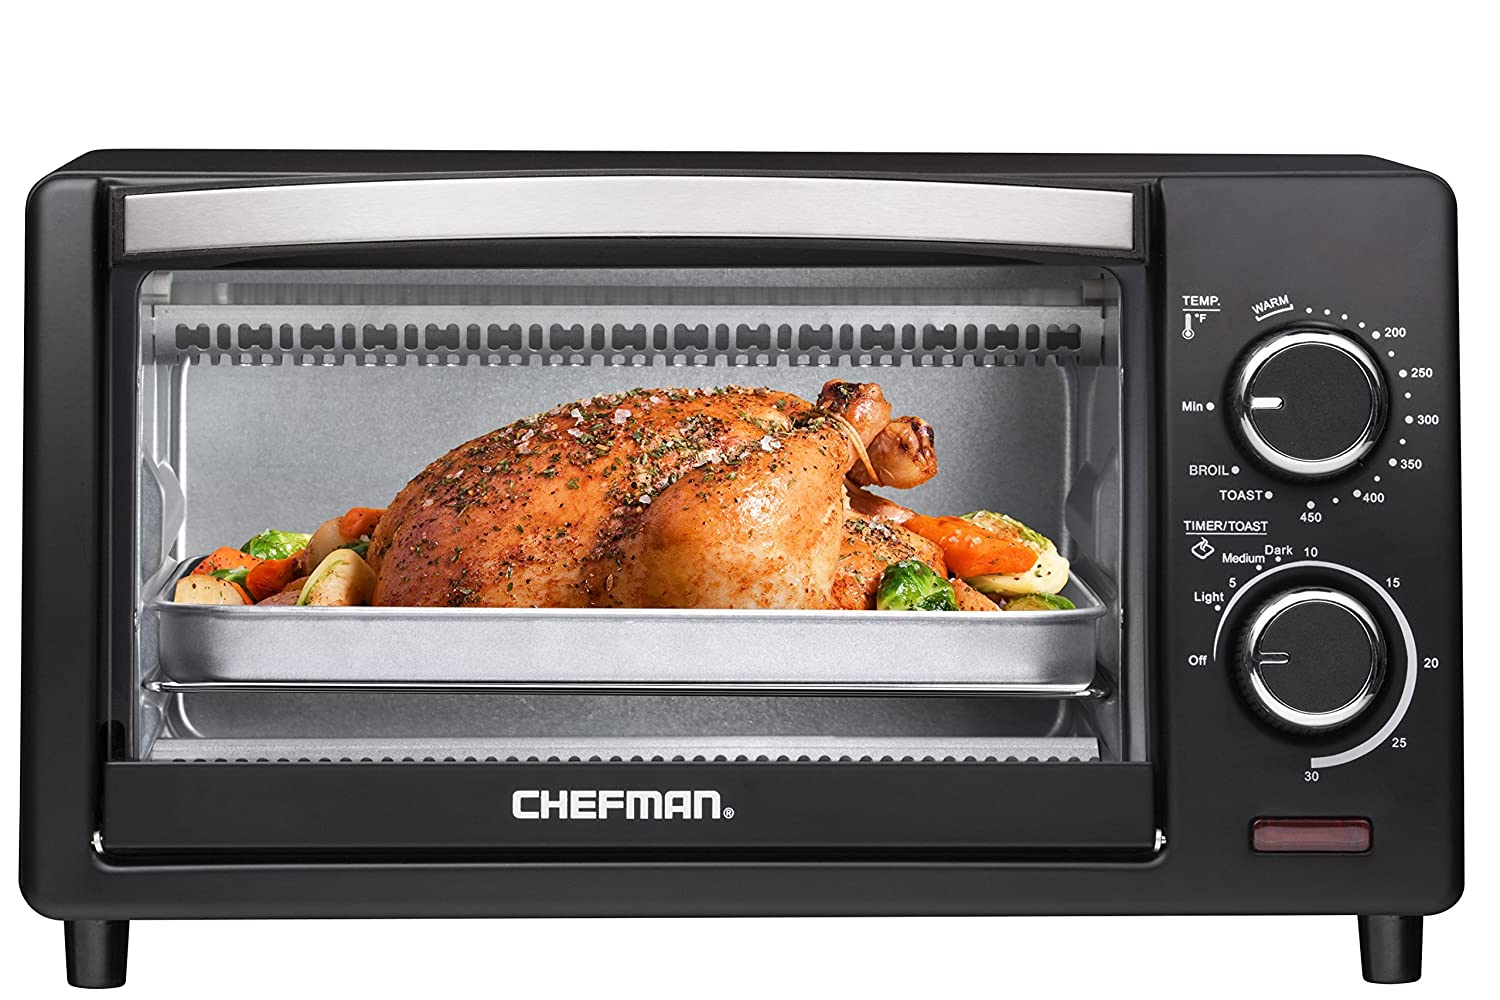 Chefman 4 Slice Countertop Toaster Oven w Variable Temperature Control and 30 Minute Timer Cooking Functions to Bake, Broil, Toast and Keep Warm Black